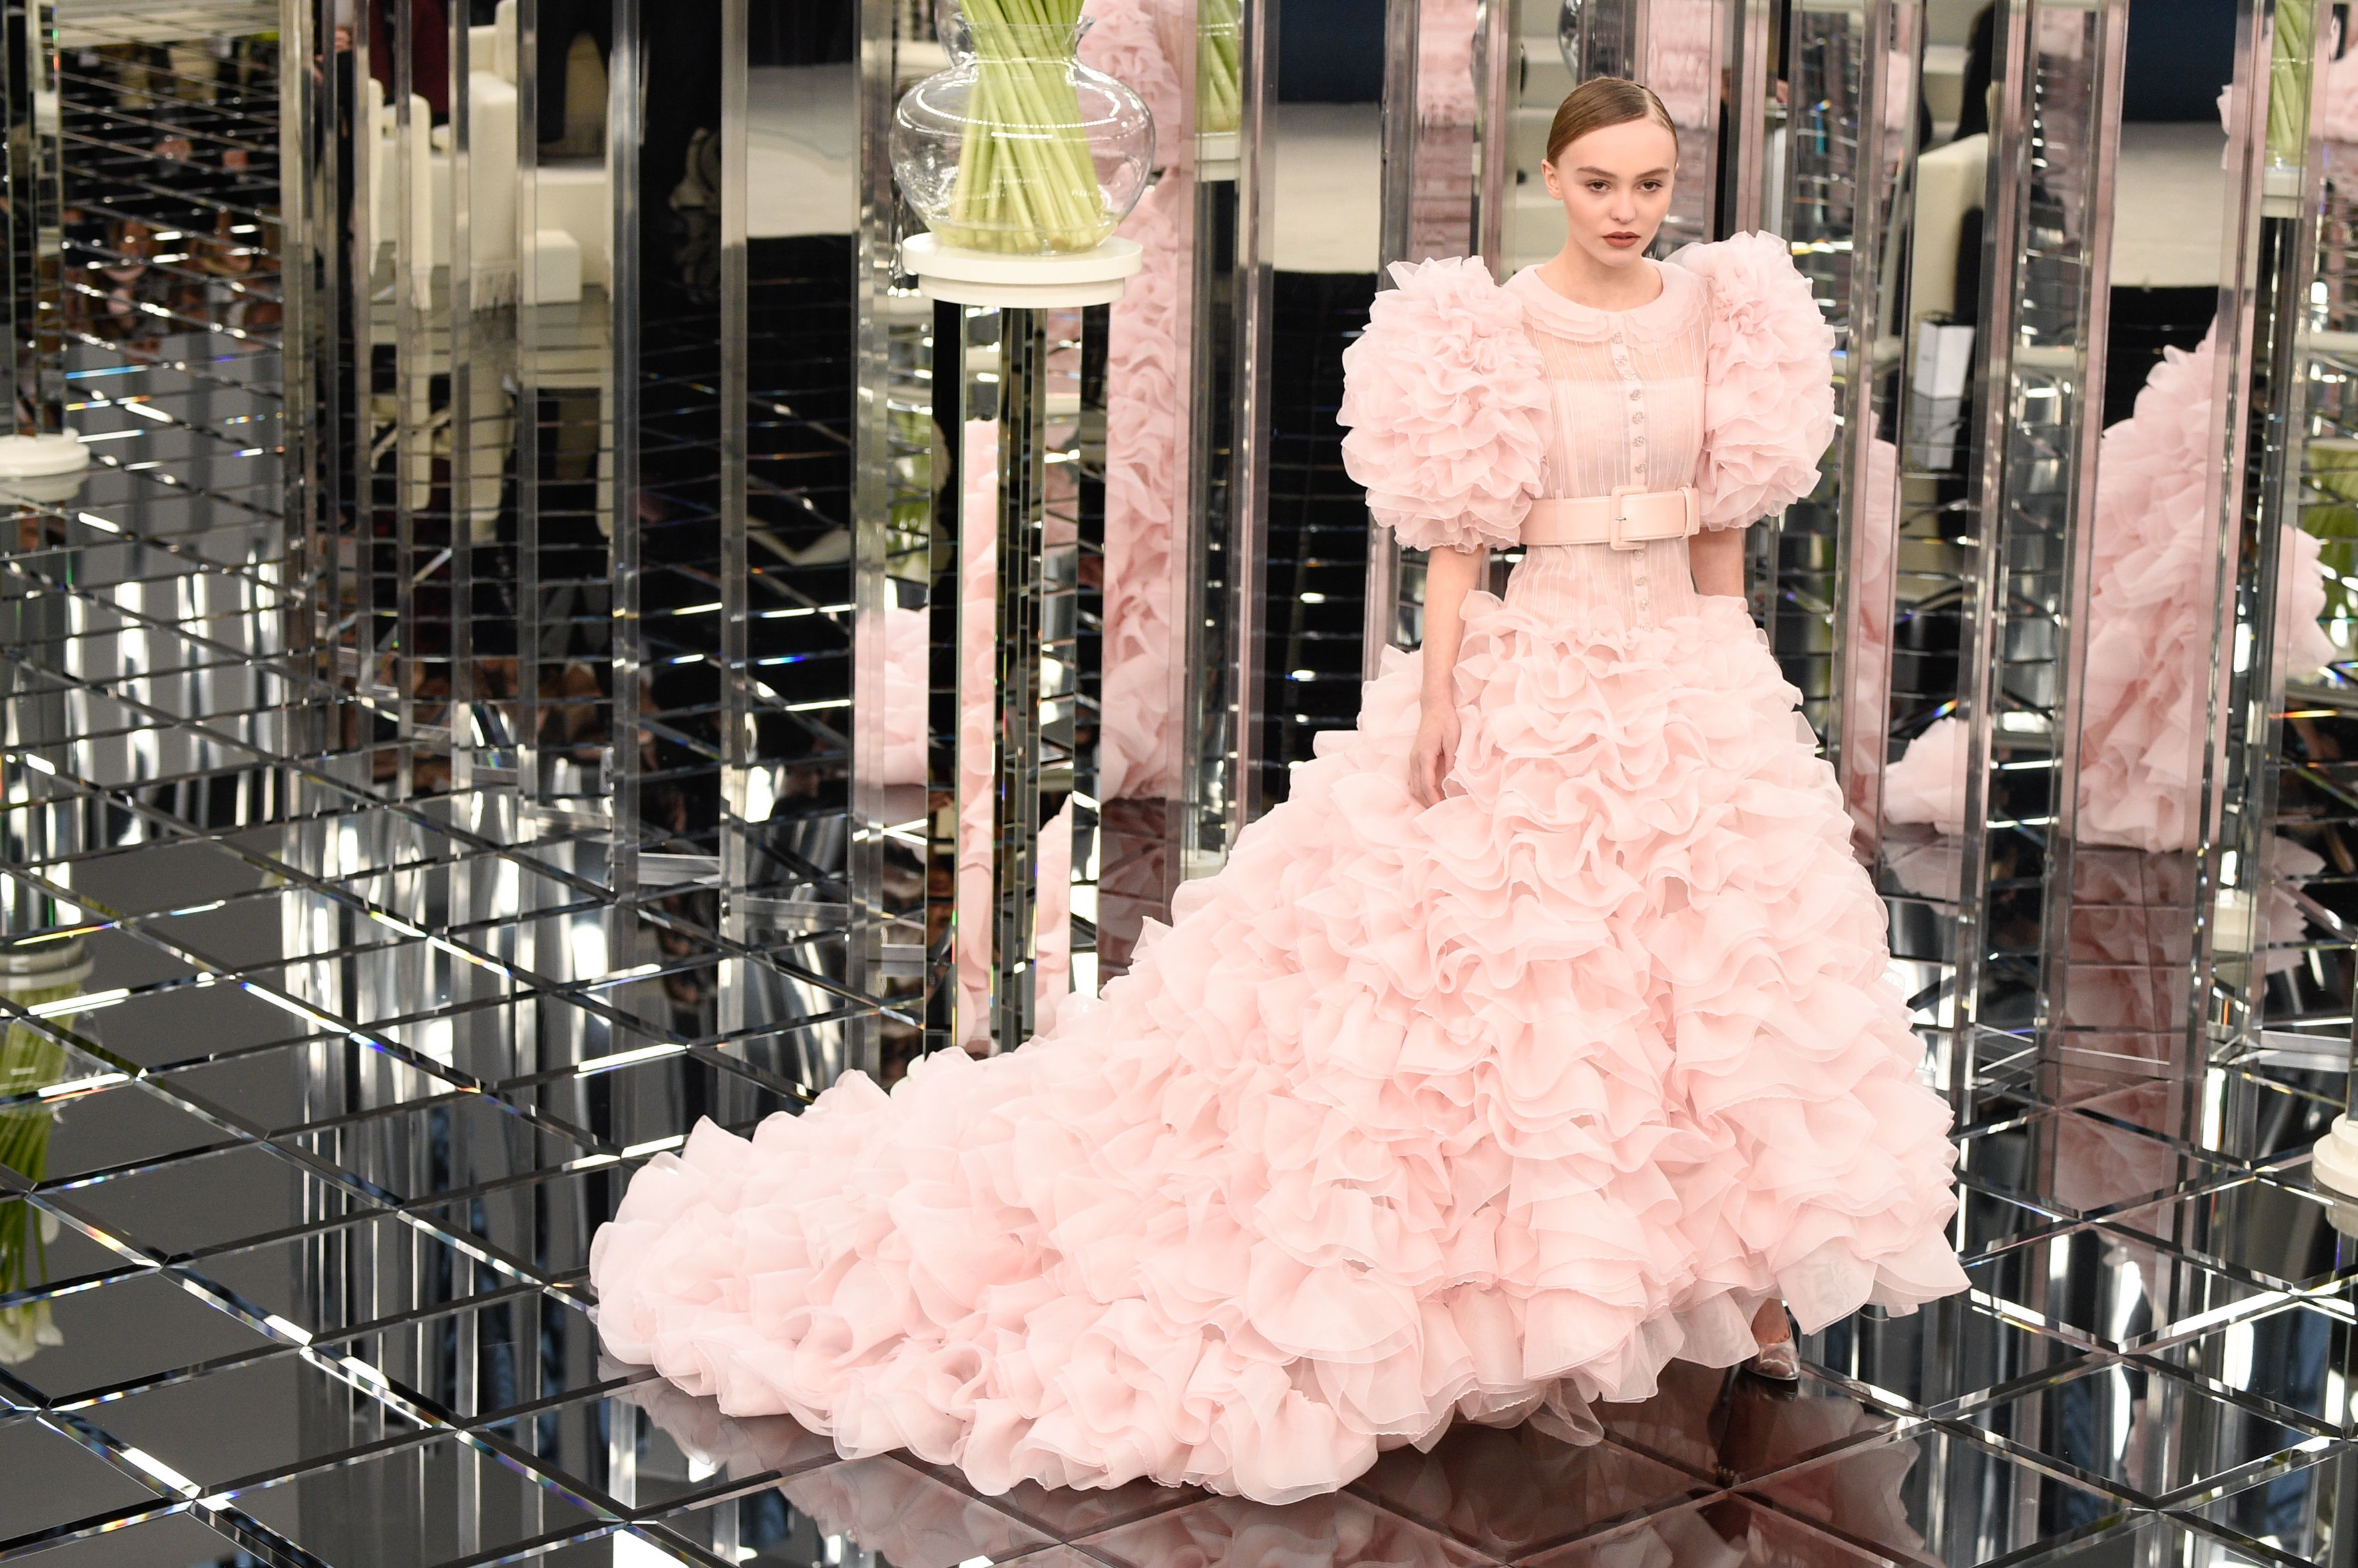 Spring Couture 2017 Gowns - The Dreamiest Gowns From Spring Couture 2017